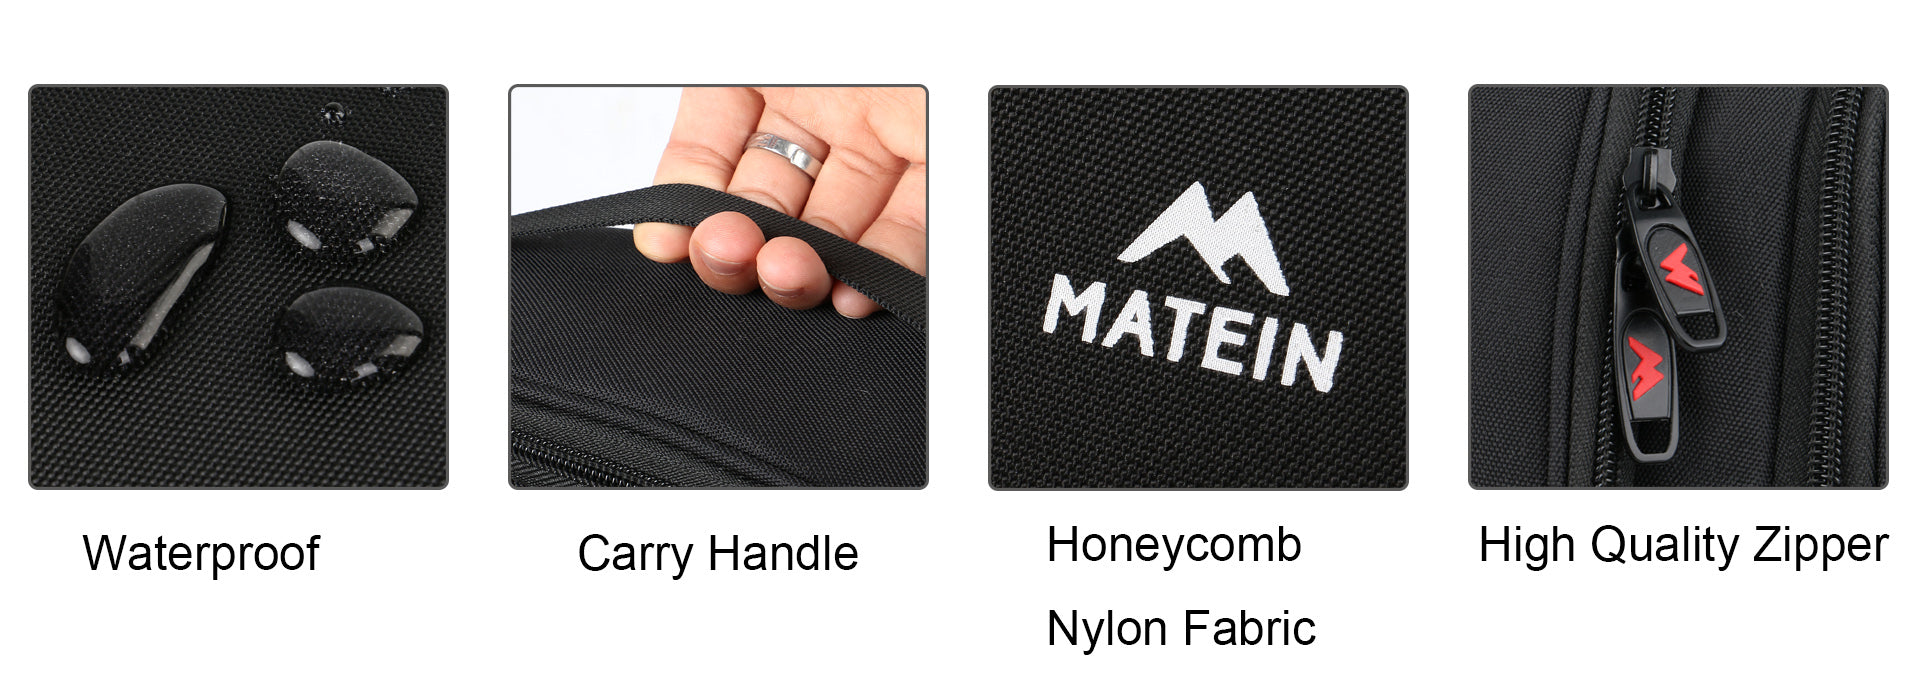 Matein Toiletry Bag